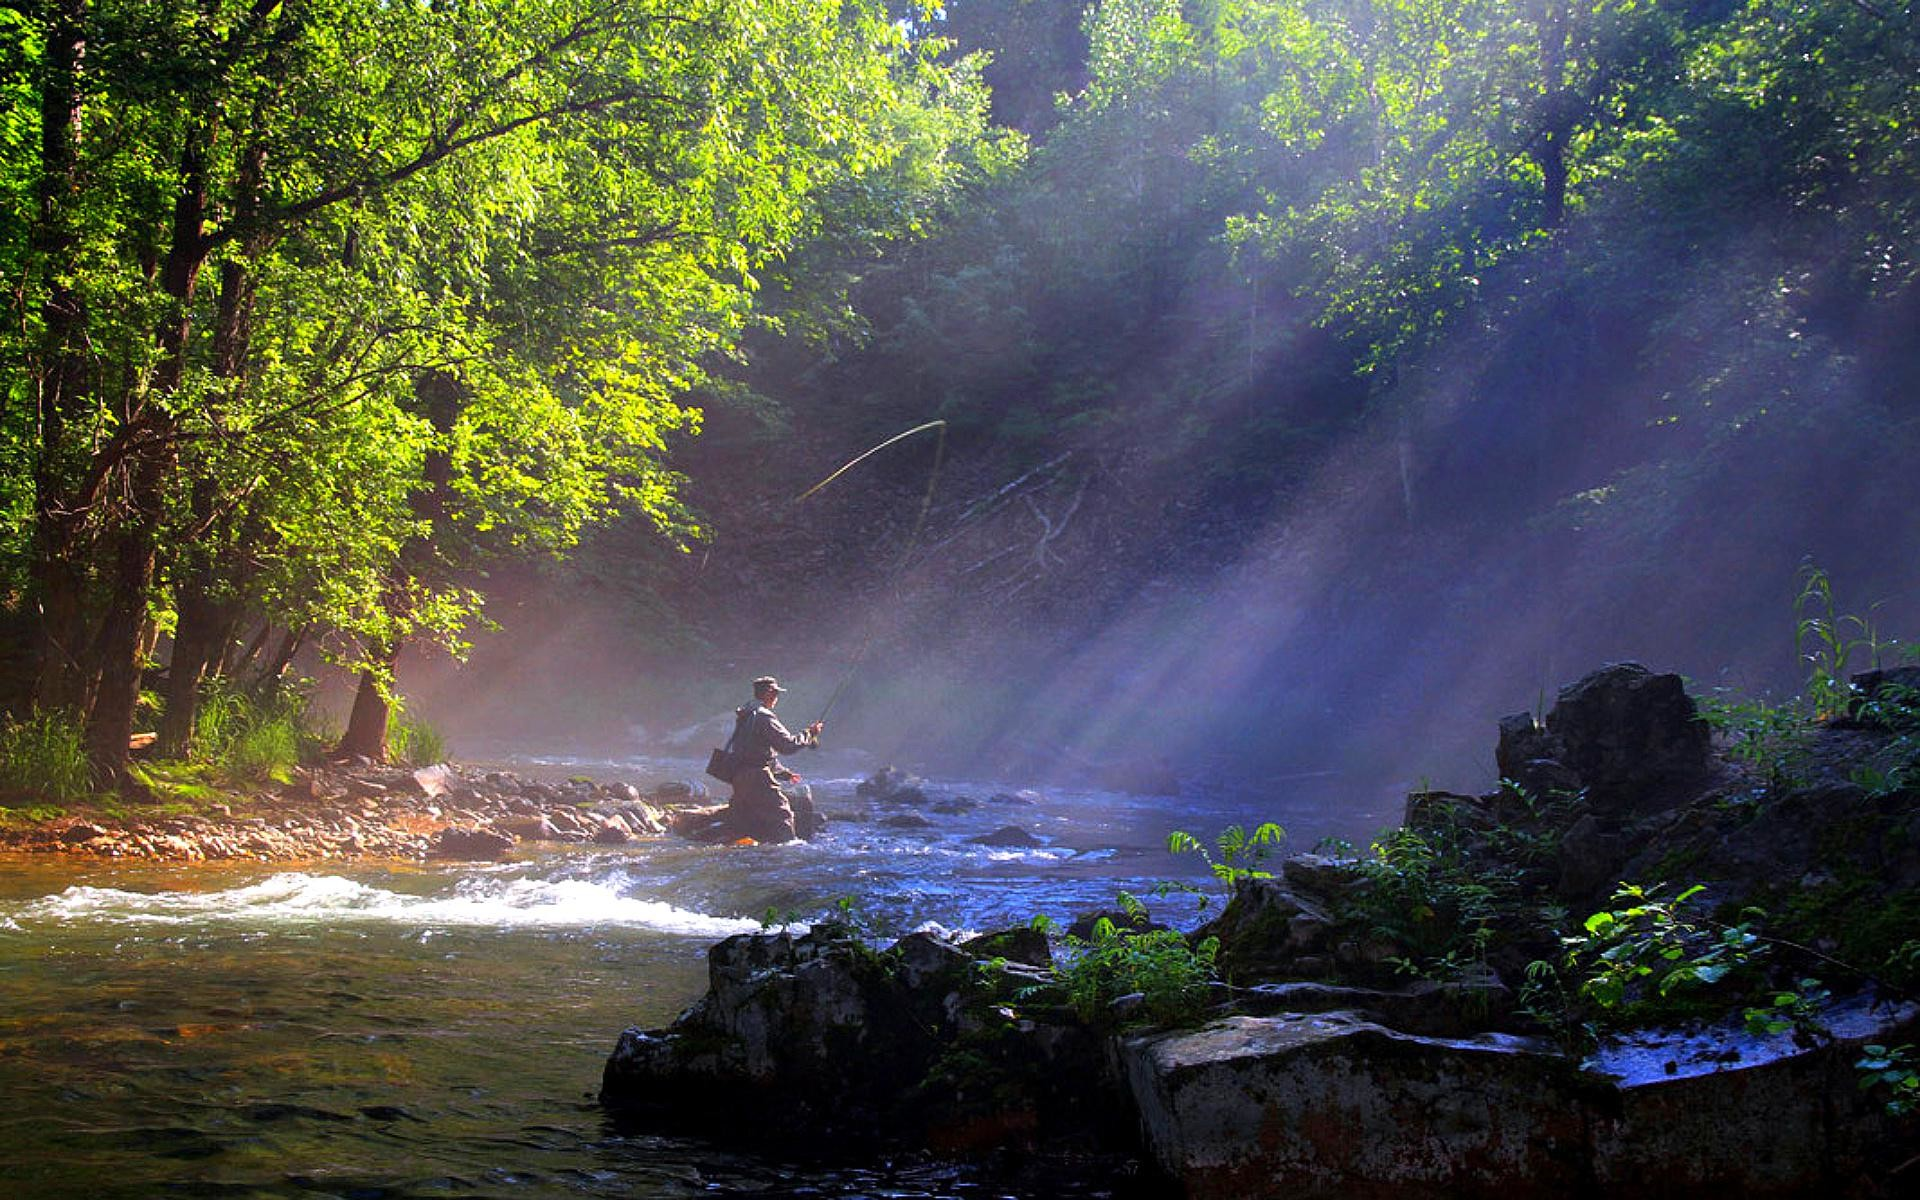 1920x1200 Fly Fishing Desktop Wallpaper, Fly Fishing Pictures Free, New .